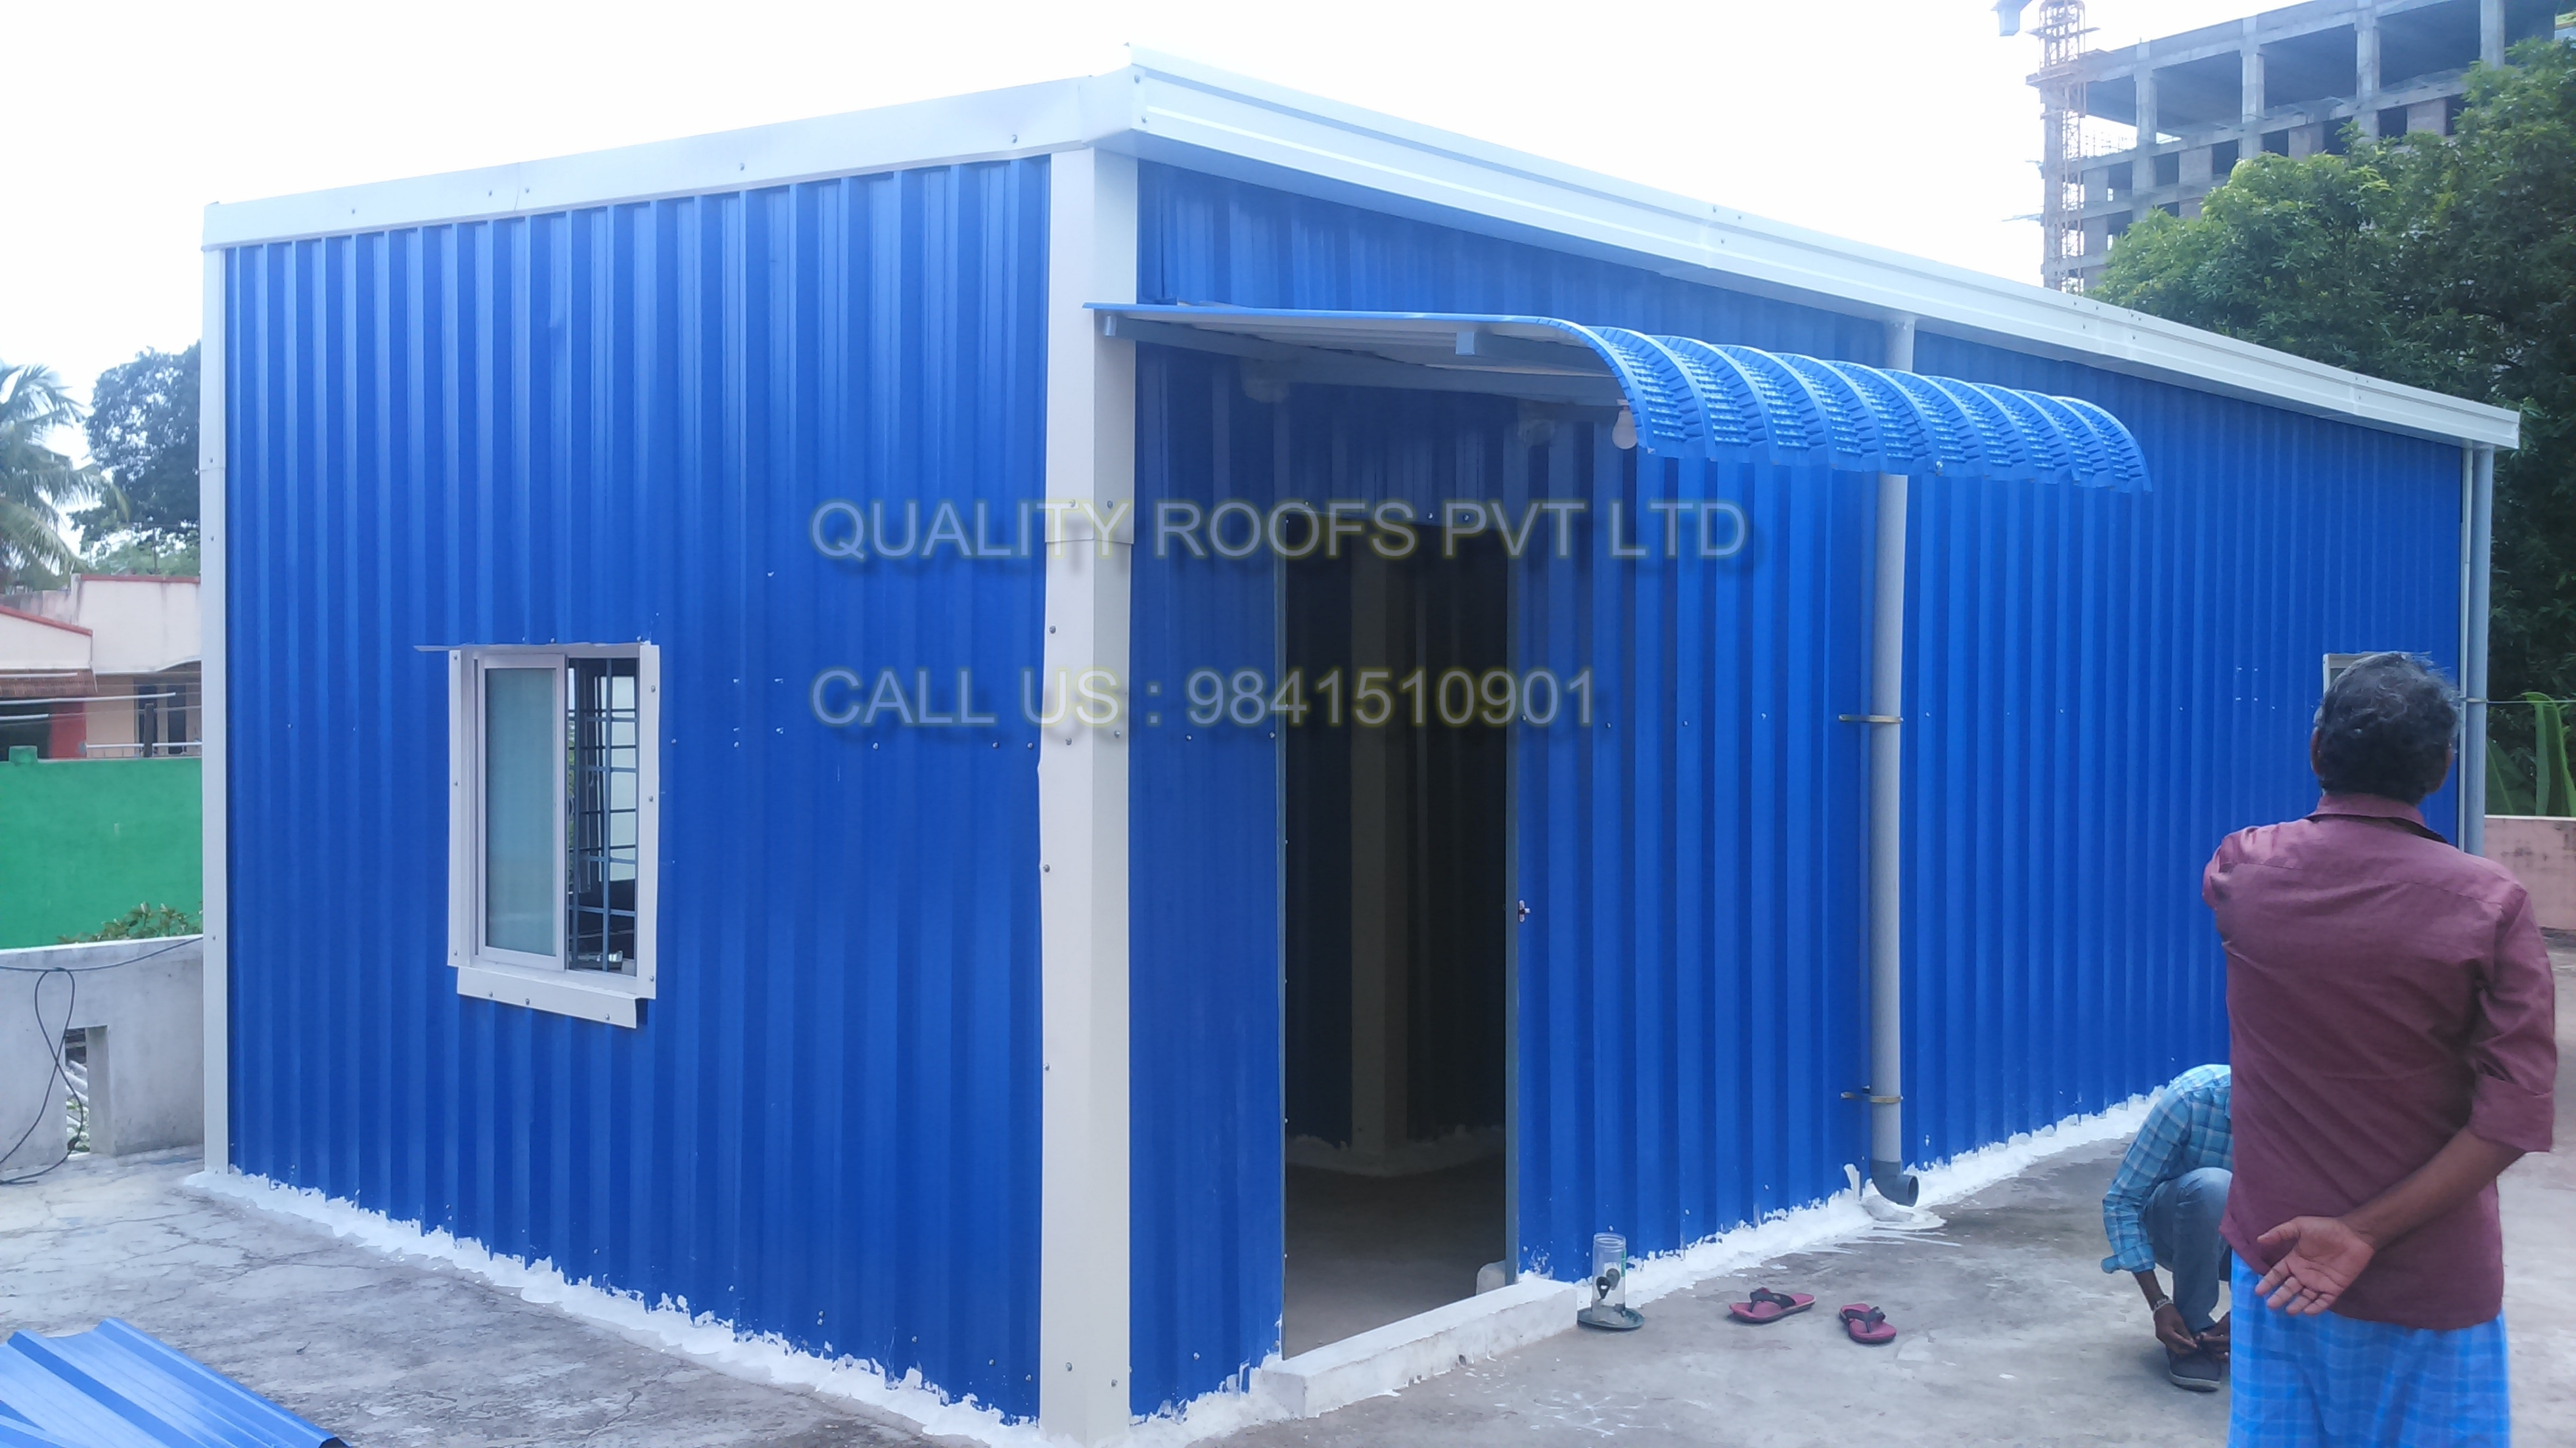 Warehouse Roofing Contractors In Chennai     Warehouse Roofing Contractors In Chennai. Our Company provides a complete range of Steel Industrial Shed. Our steel industrial sheds are catered to diversified requirements of various industrial establishments. Our expertise is capable in fabricating such steel structural sheds in different sizes and dimensions and other optional features as per the specified requirements of our clients. We are undertaking all kinds of Roofing Works In Chennai.